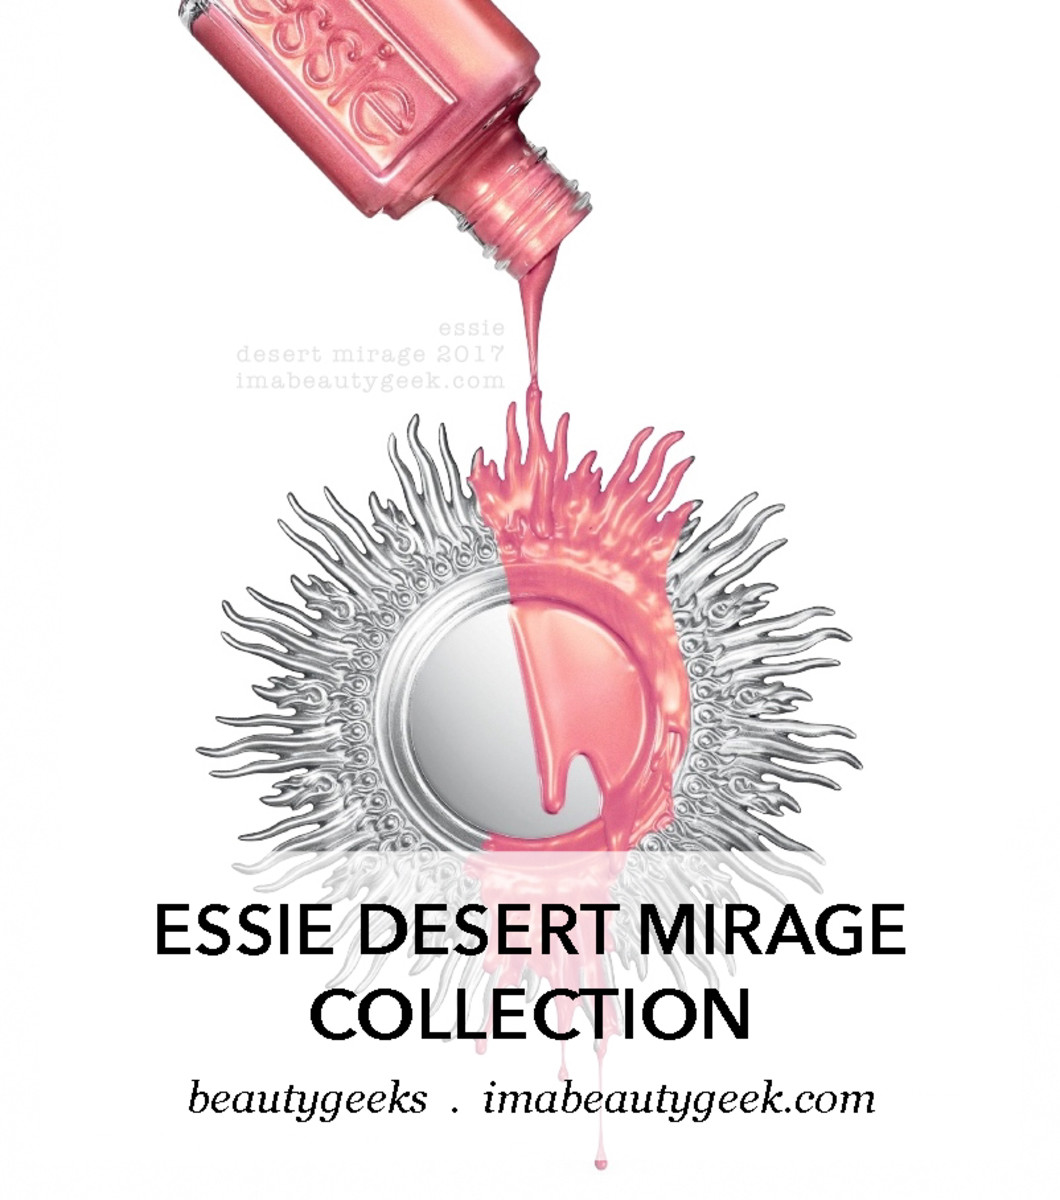 Essie Desert Mirage Collection Swatches Review-Beautygeeks